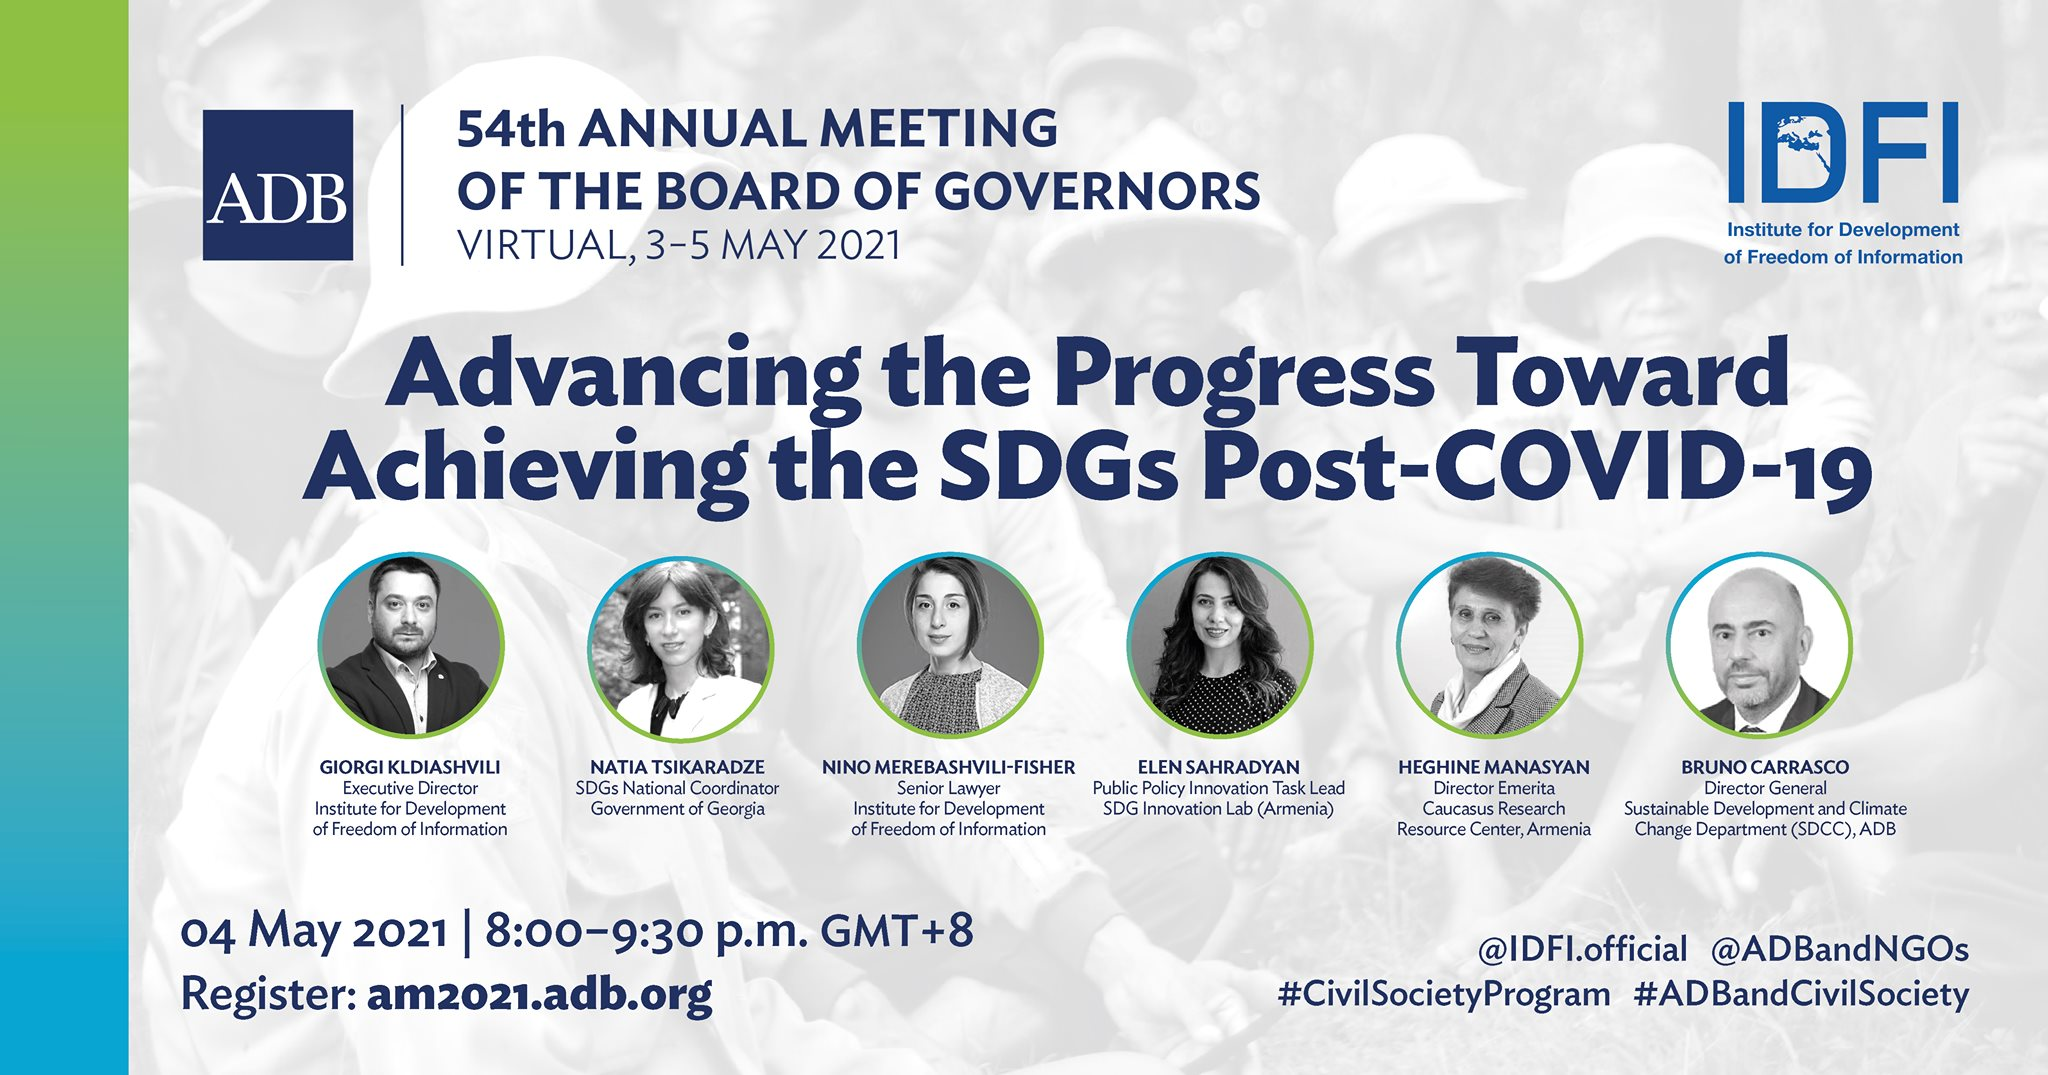 Advancing the Progress toward Achieving the SDGs Post-Covid-19 - IDFI's Panel Discussion for the 54th Annual Meeting of ADB